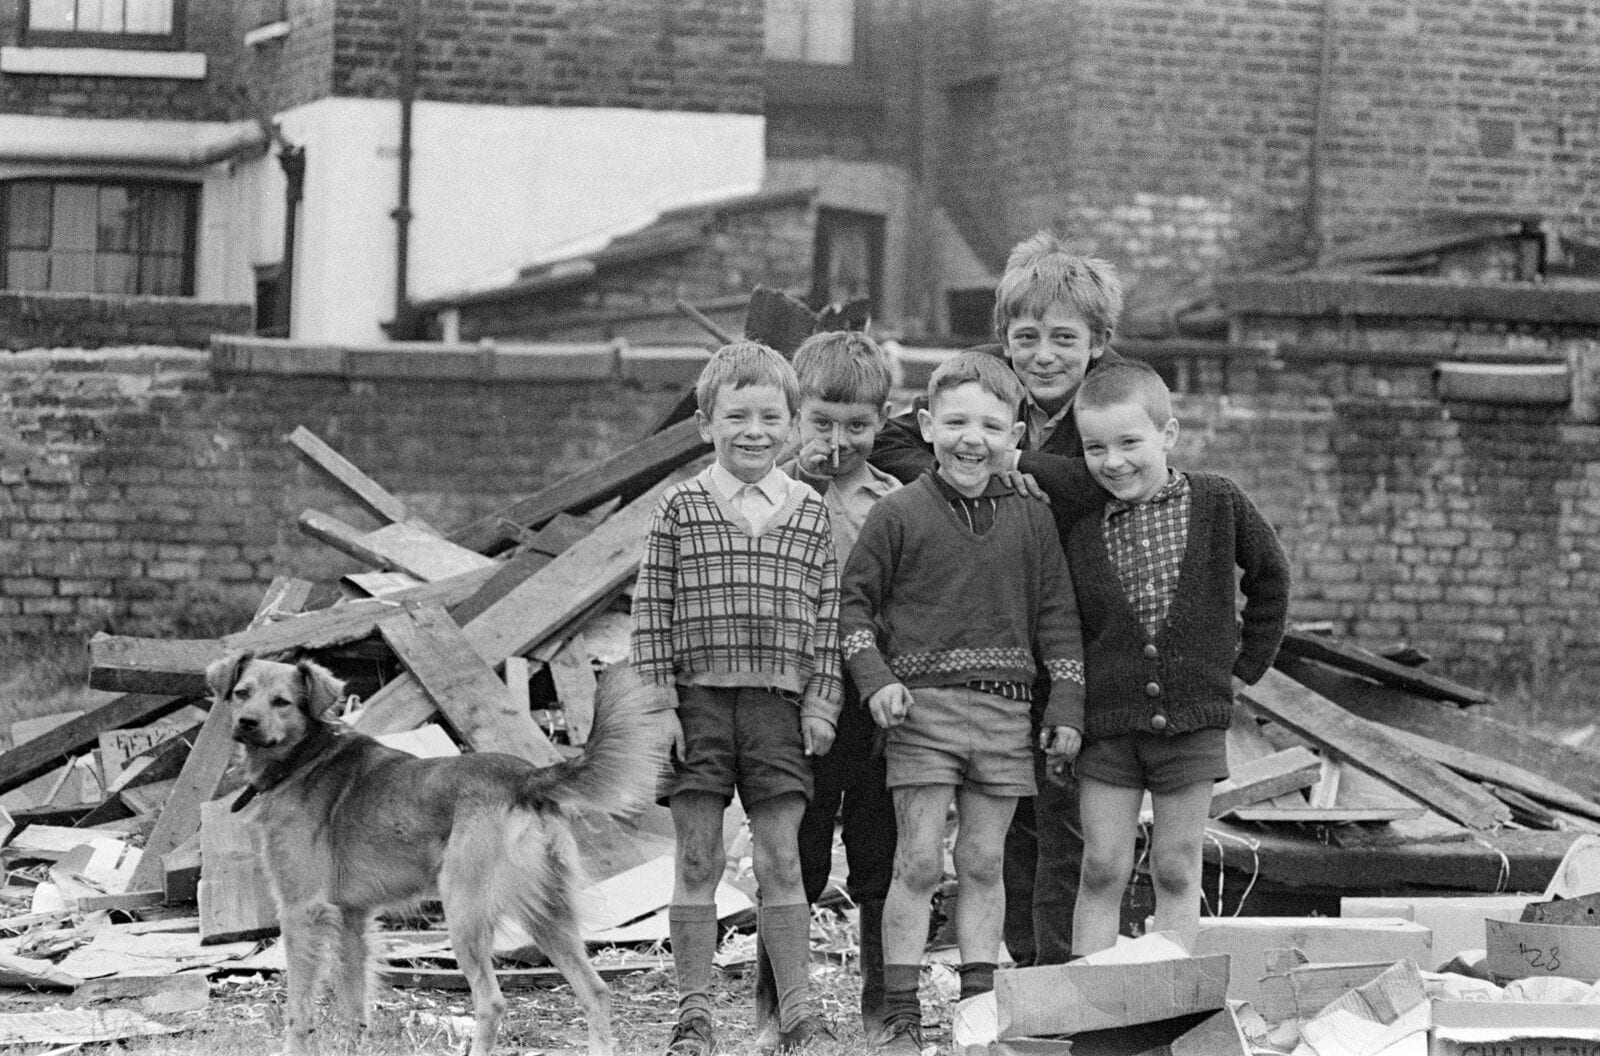 A snapshot in time: Photographer shares images captured in 1970s Manchester, The Manc